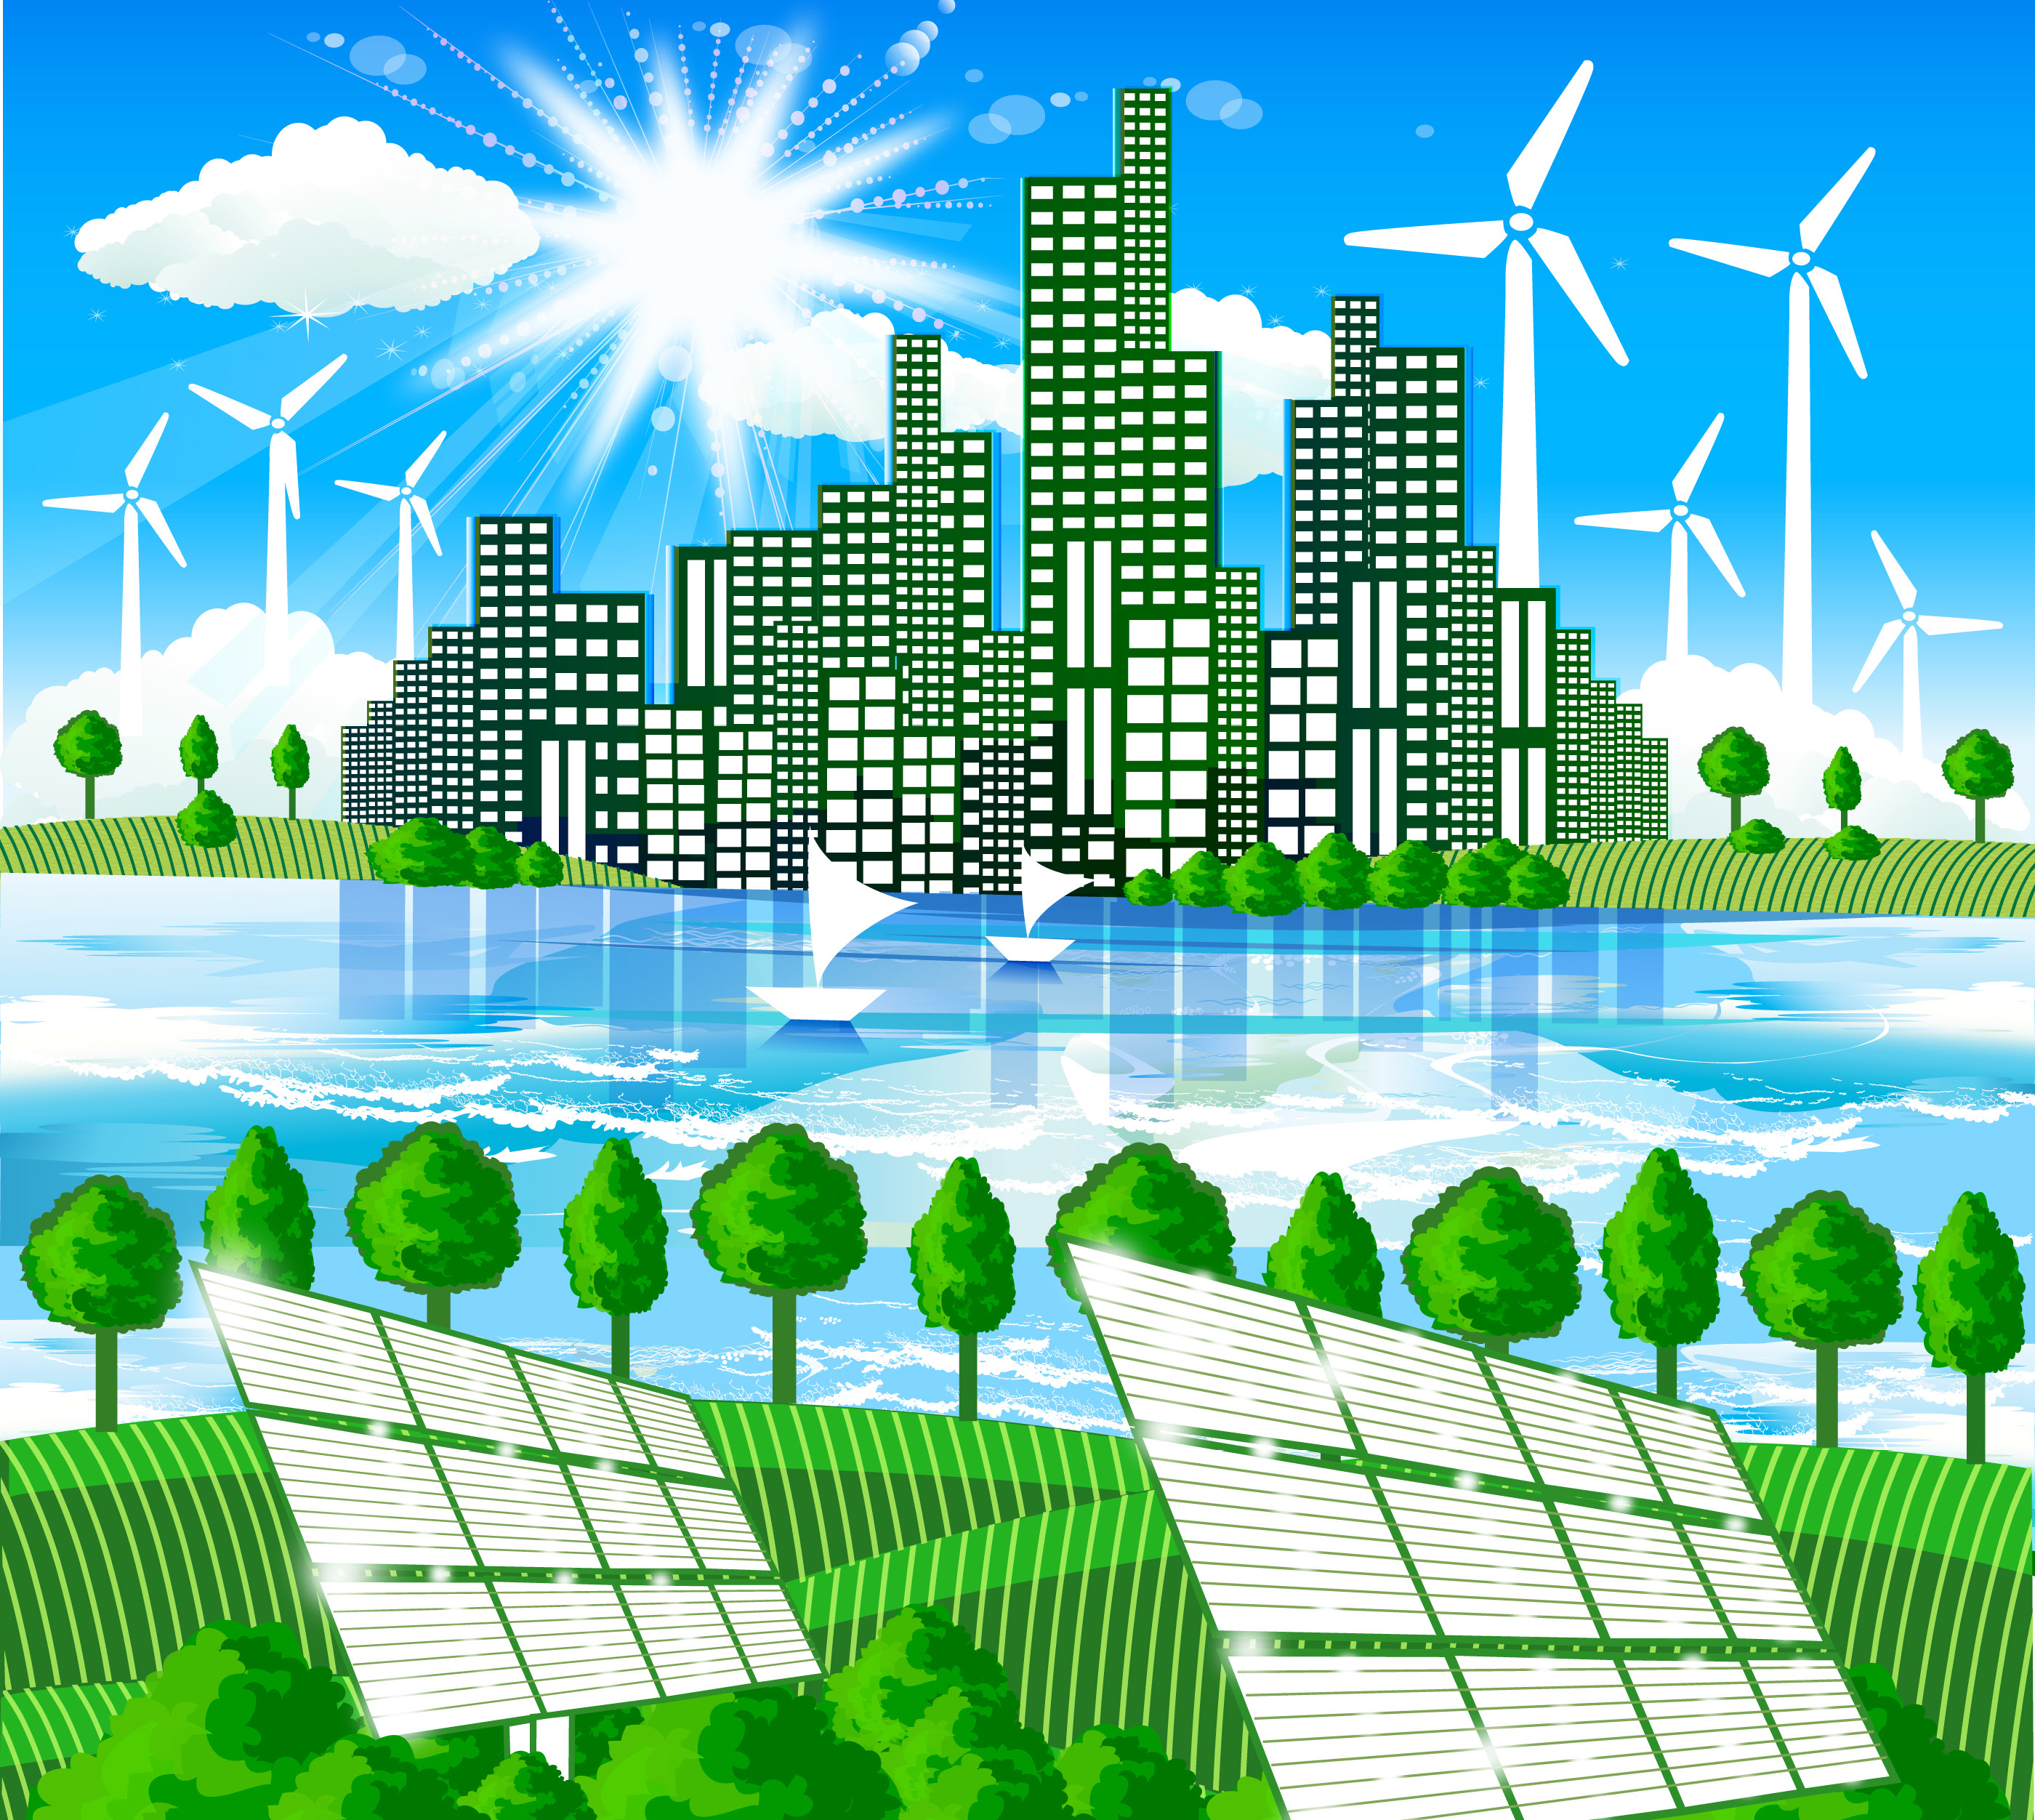 energy devices for sustainable urban environment